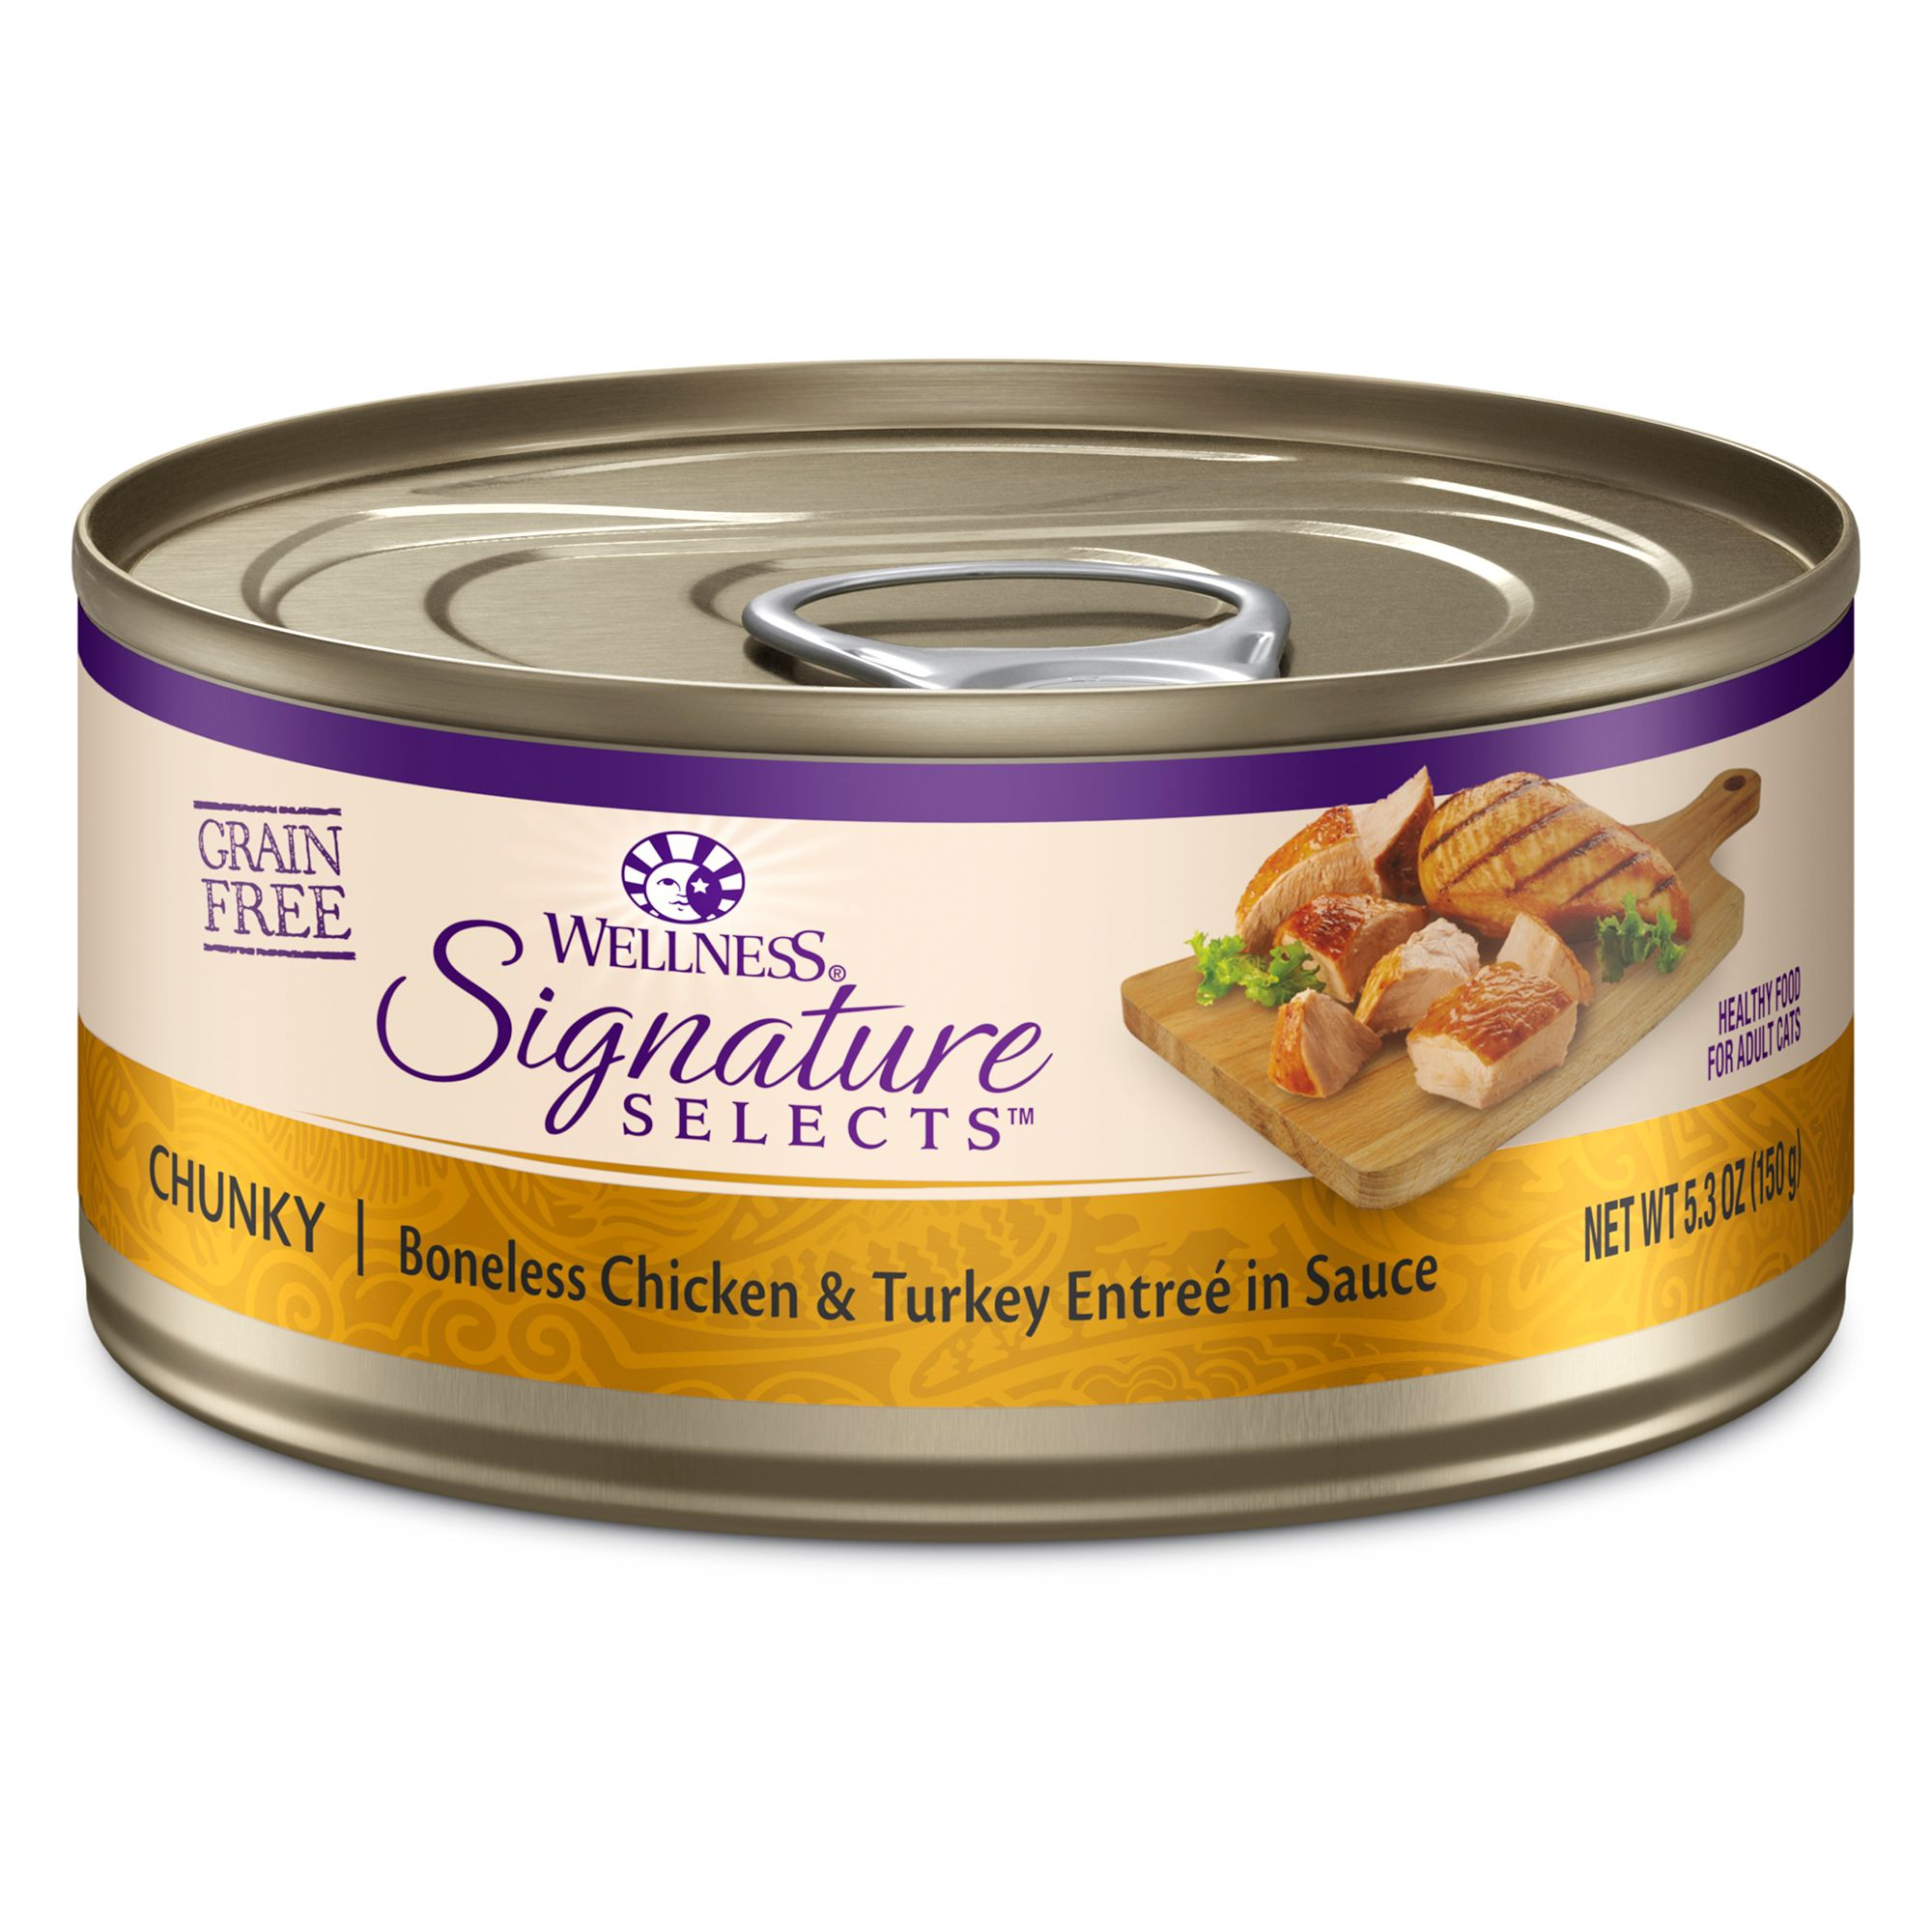 Wellness® Signature Selects Cat Food - Natural, Grain Free size: 5.3 Oz 5208582